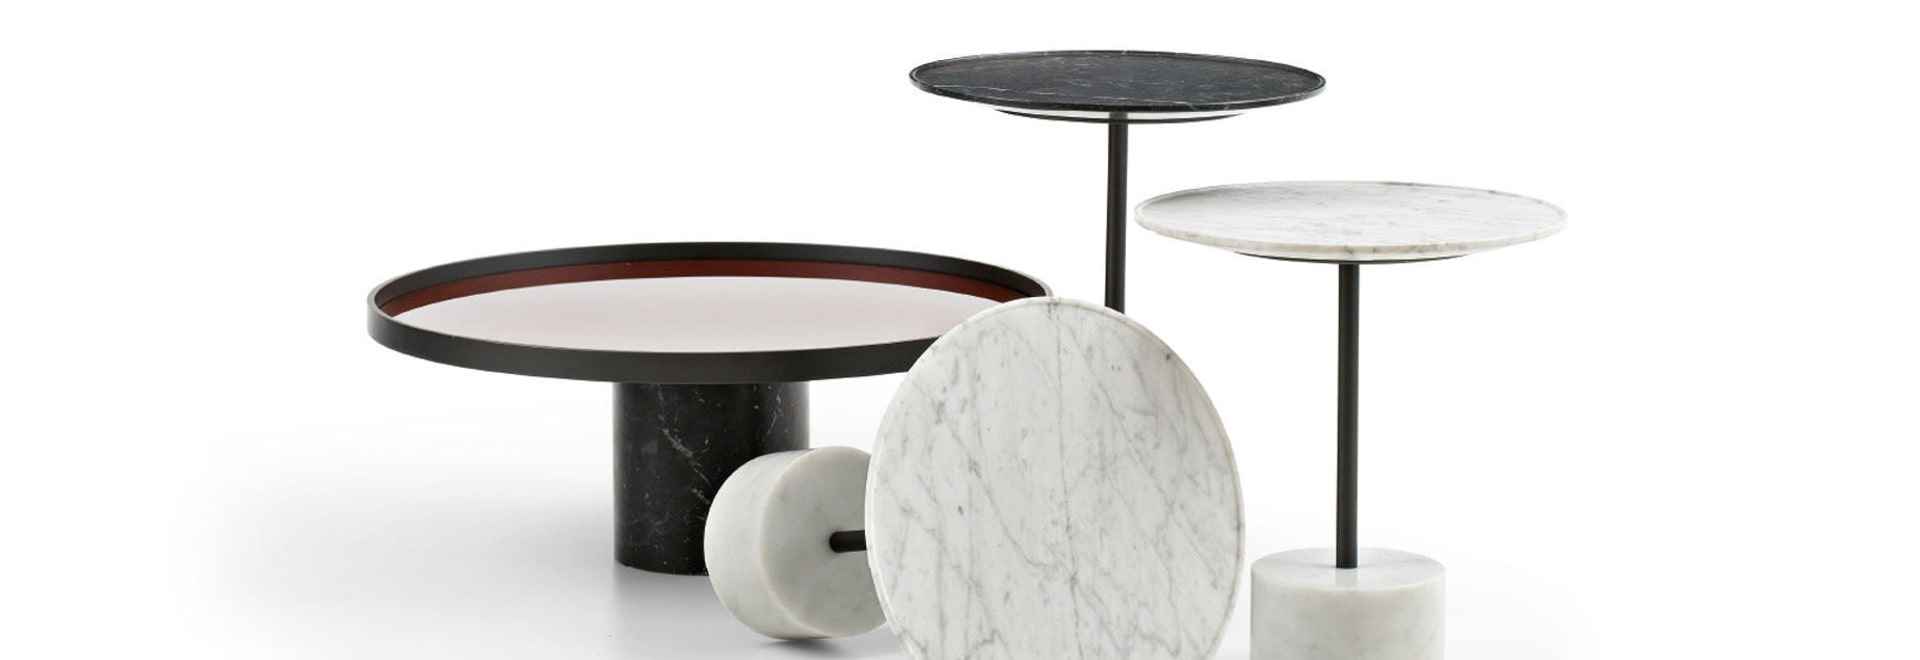 194 9 Table by Piero Lissoni for Cassina